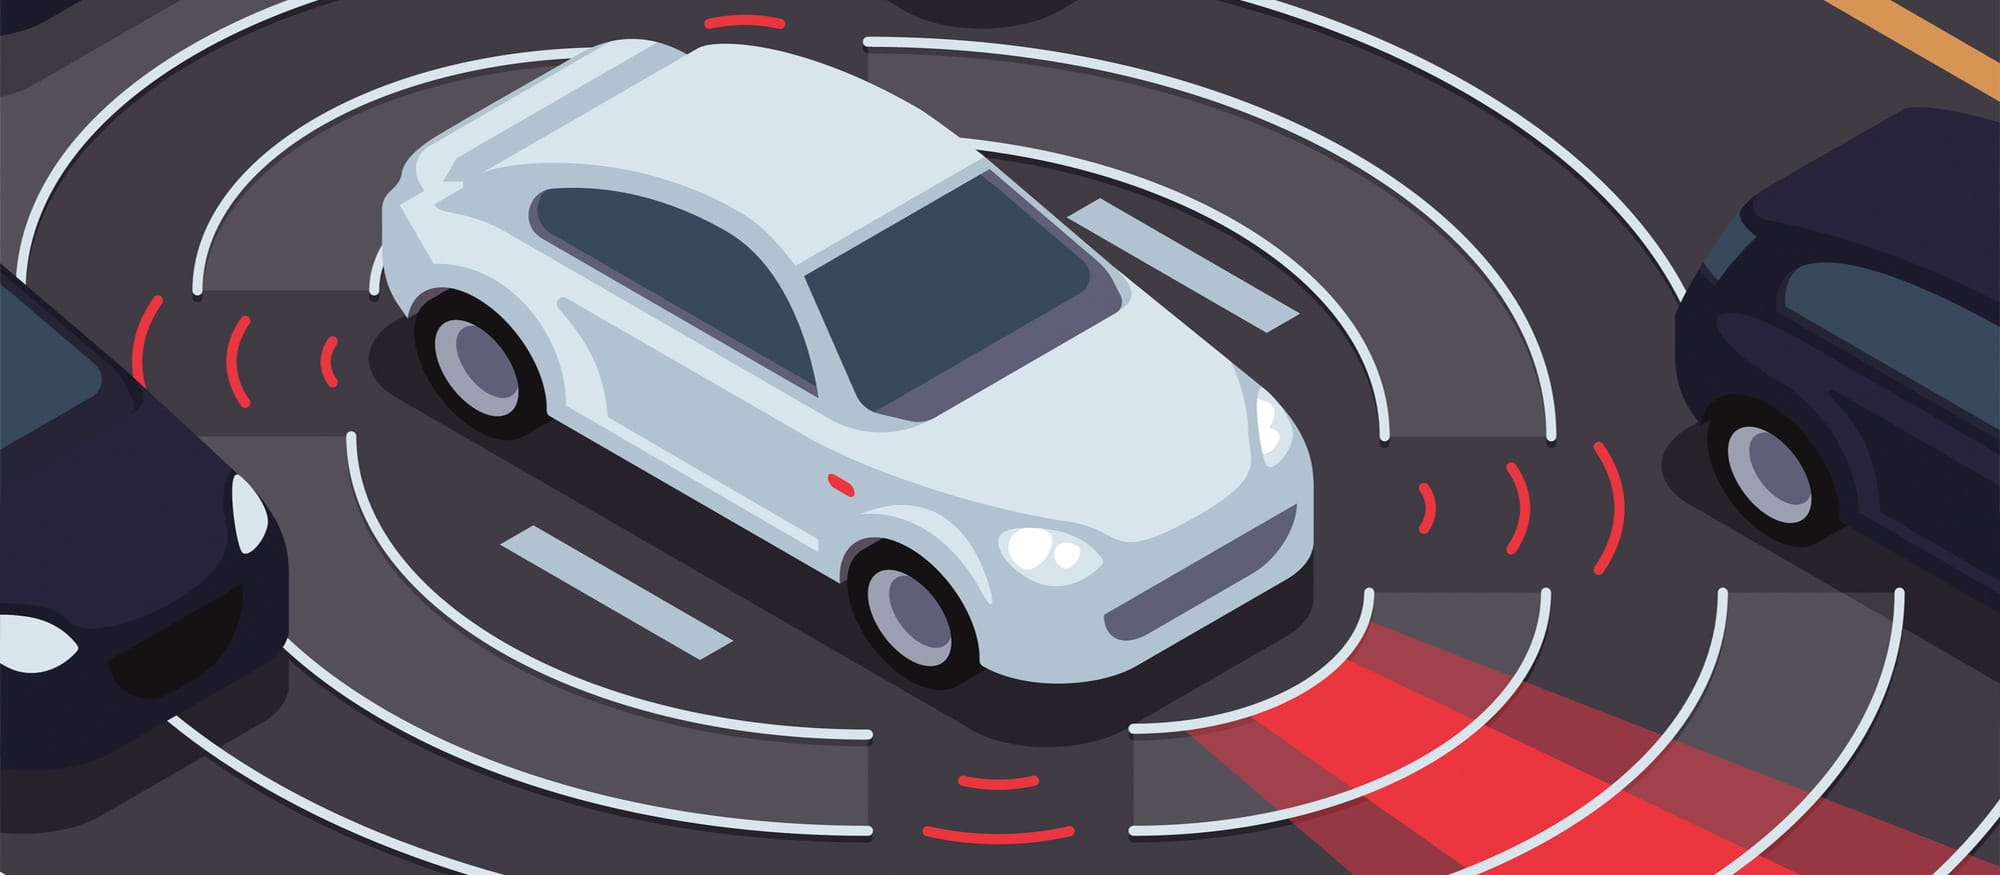 Automotive at the Edge: Machine Learning to Help Self-Driving Vehicles See Better